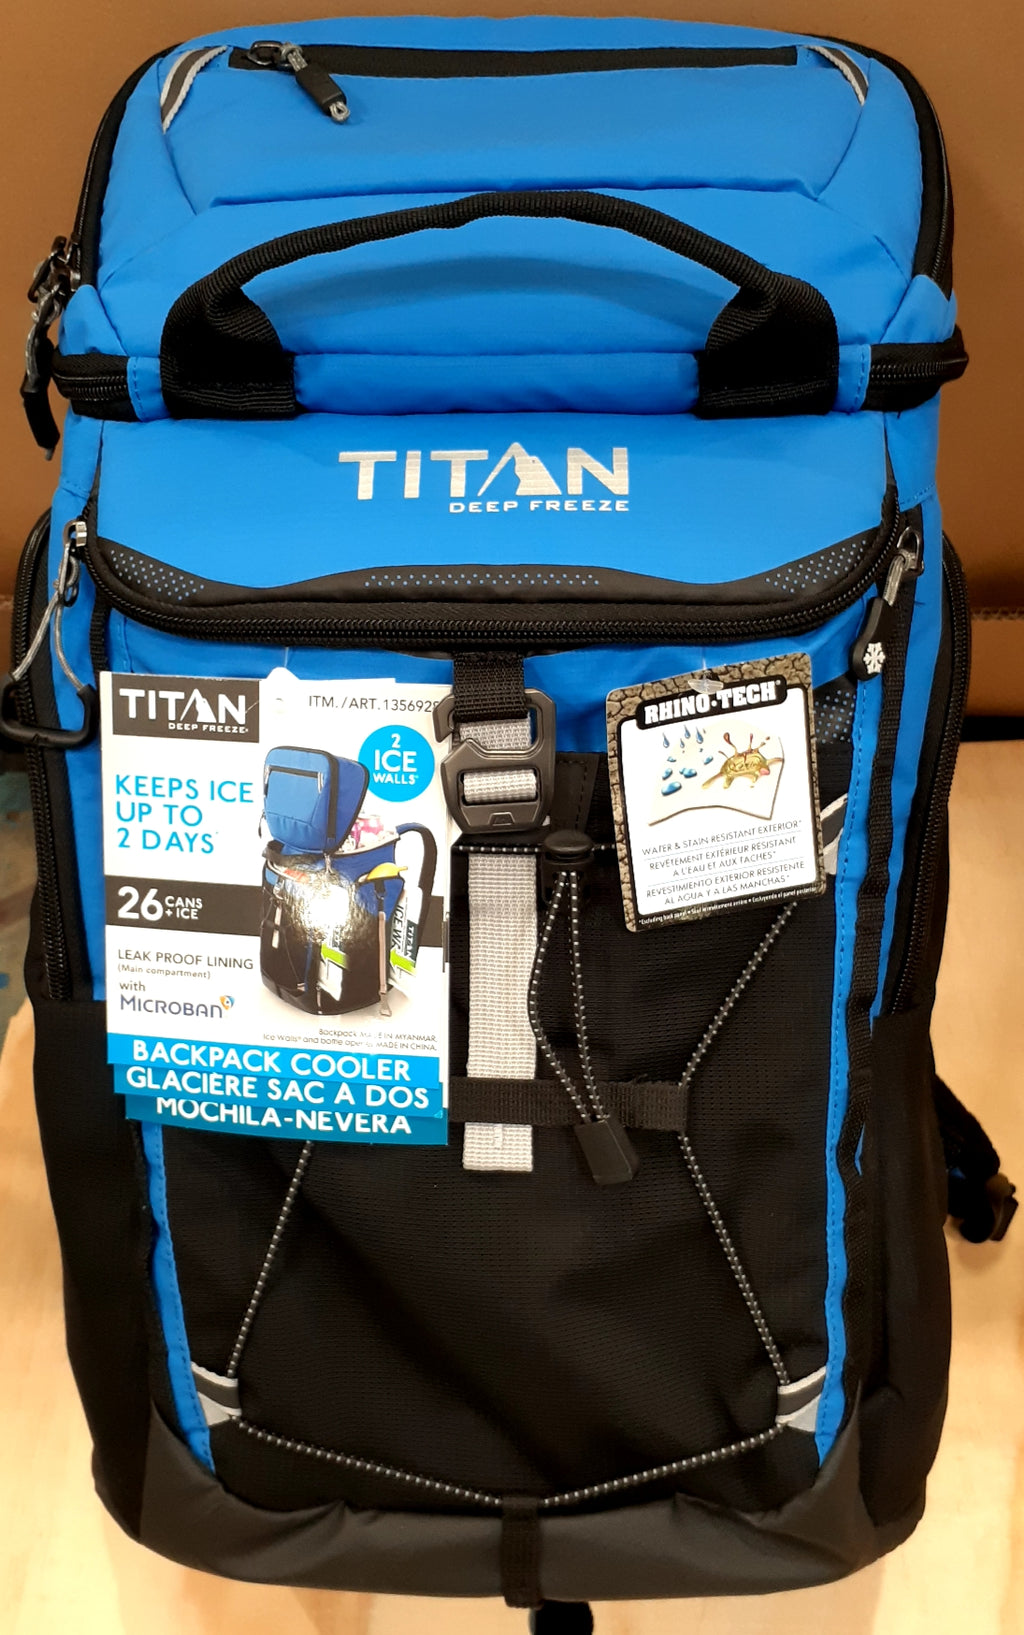 Titan cooler bag w/ ICE WALLS keeps 26 cans ice cold for 2 days FAST SHIPPING!